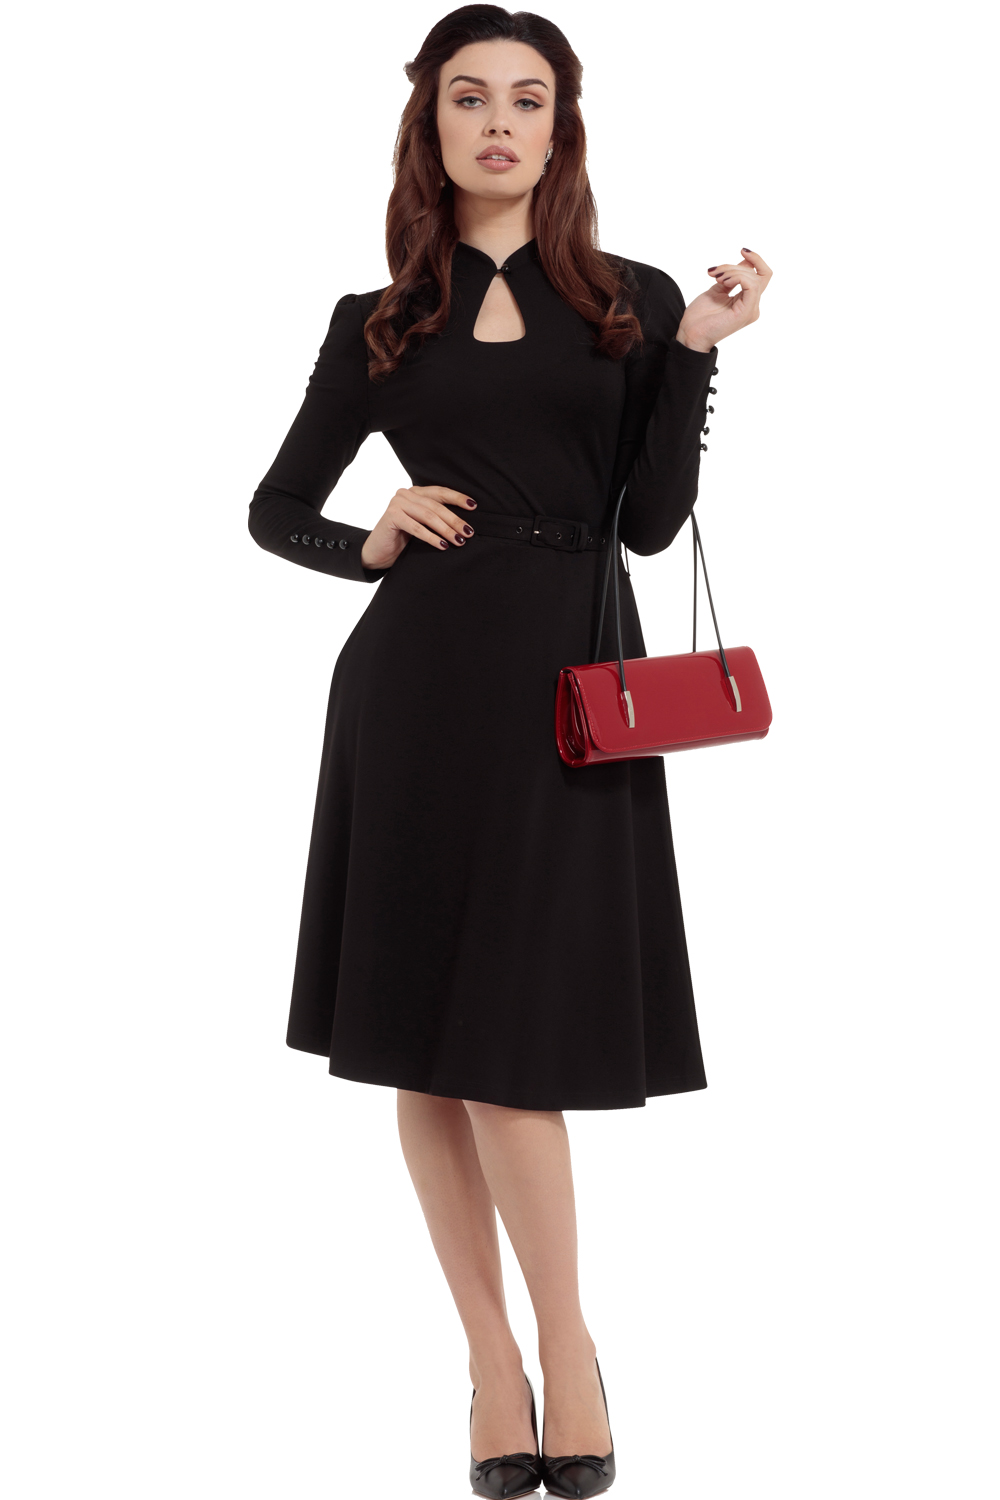 Voodoo Vixen Black Dita 1950s Swing Dress